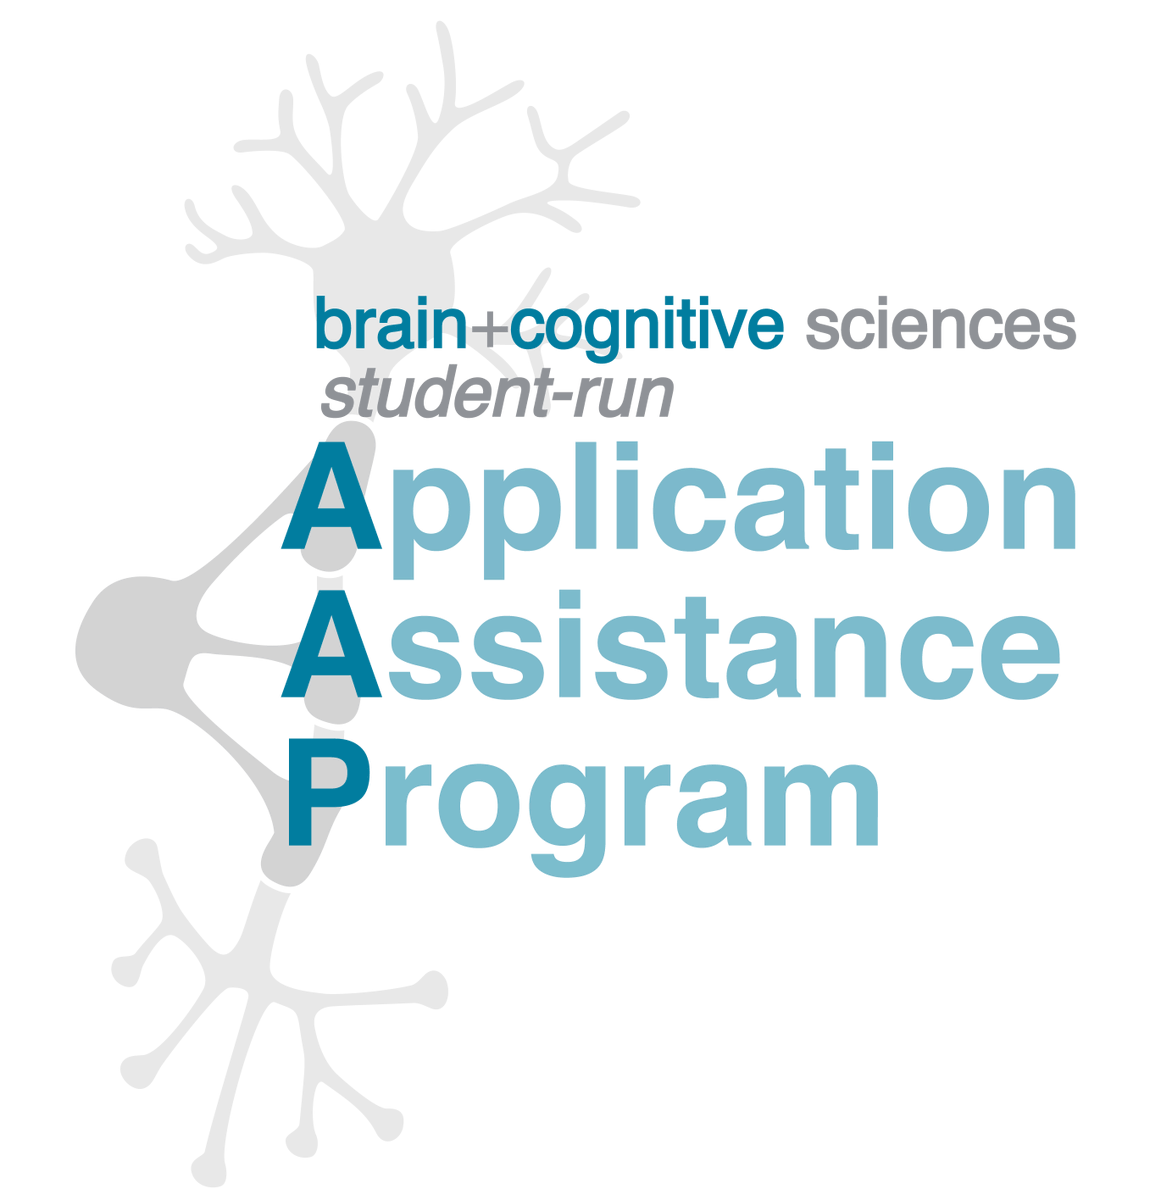 A great service for prospective grad students, run by current grad students! https://t.co/wdF71yQ41E